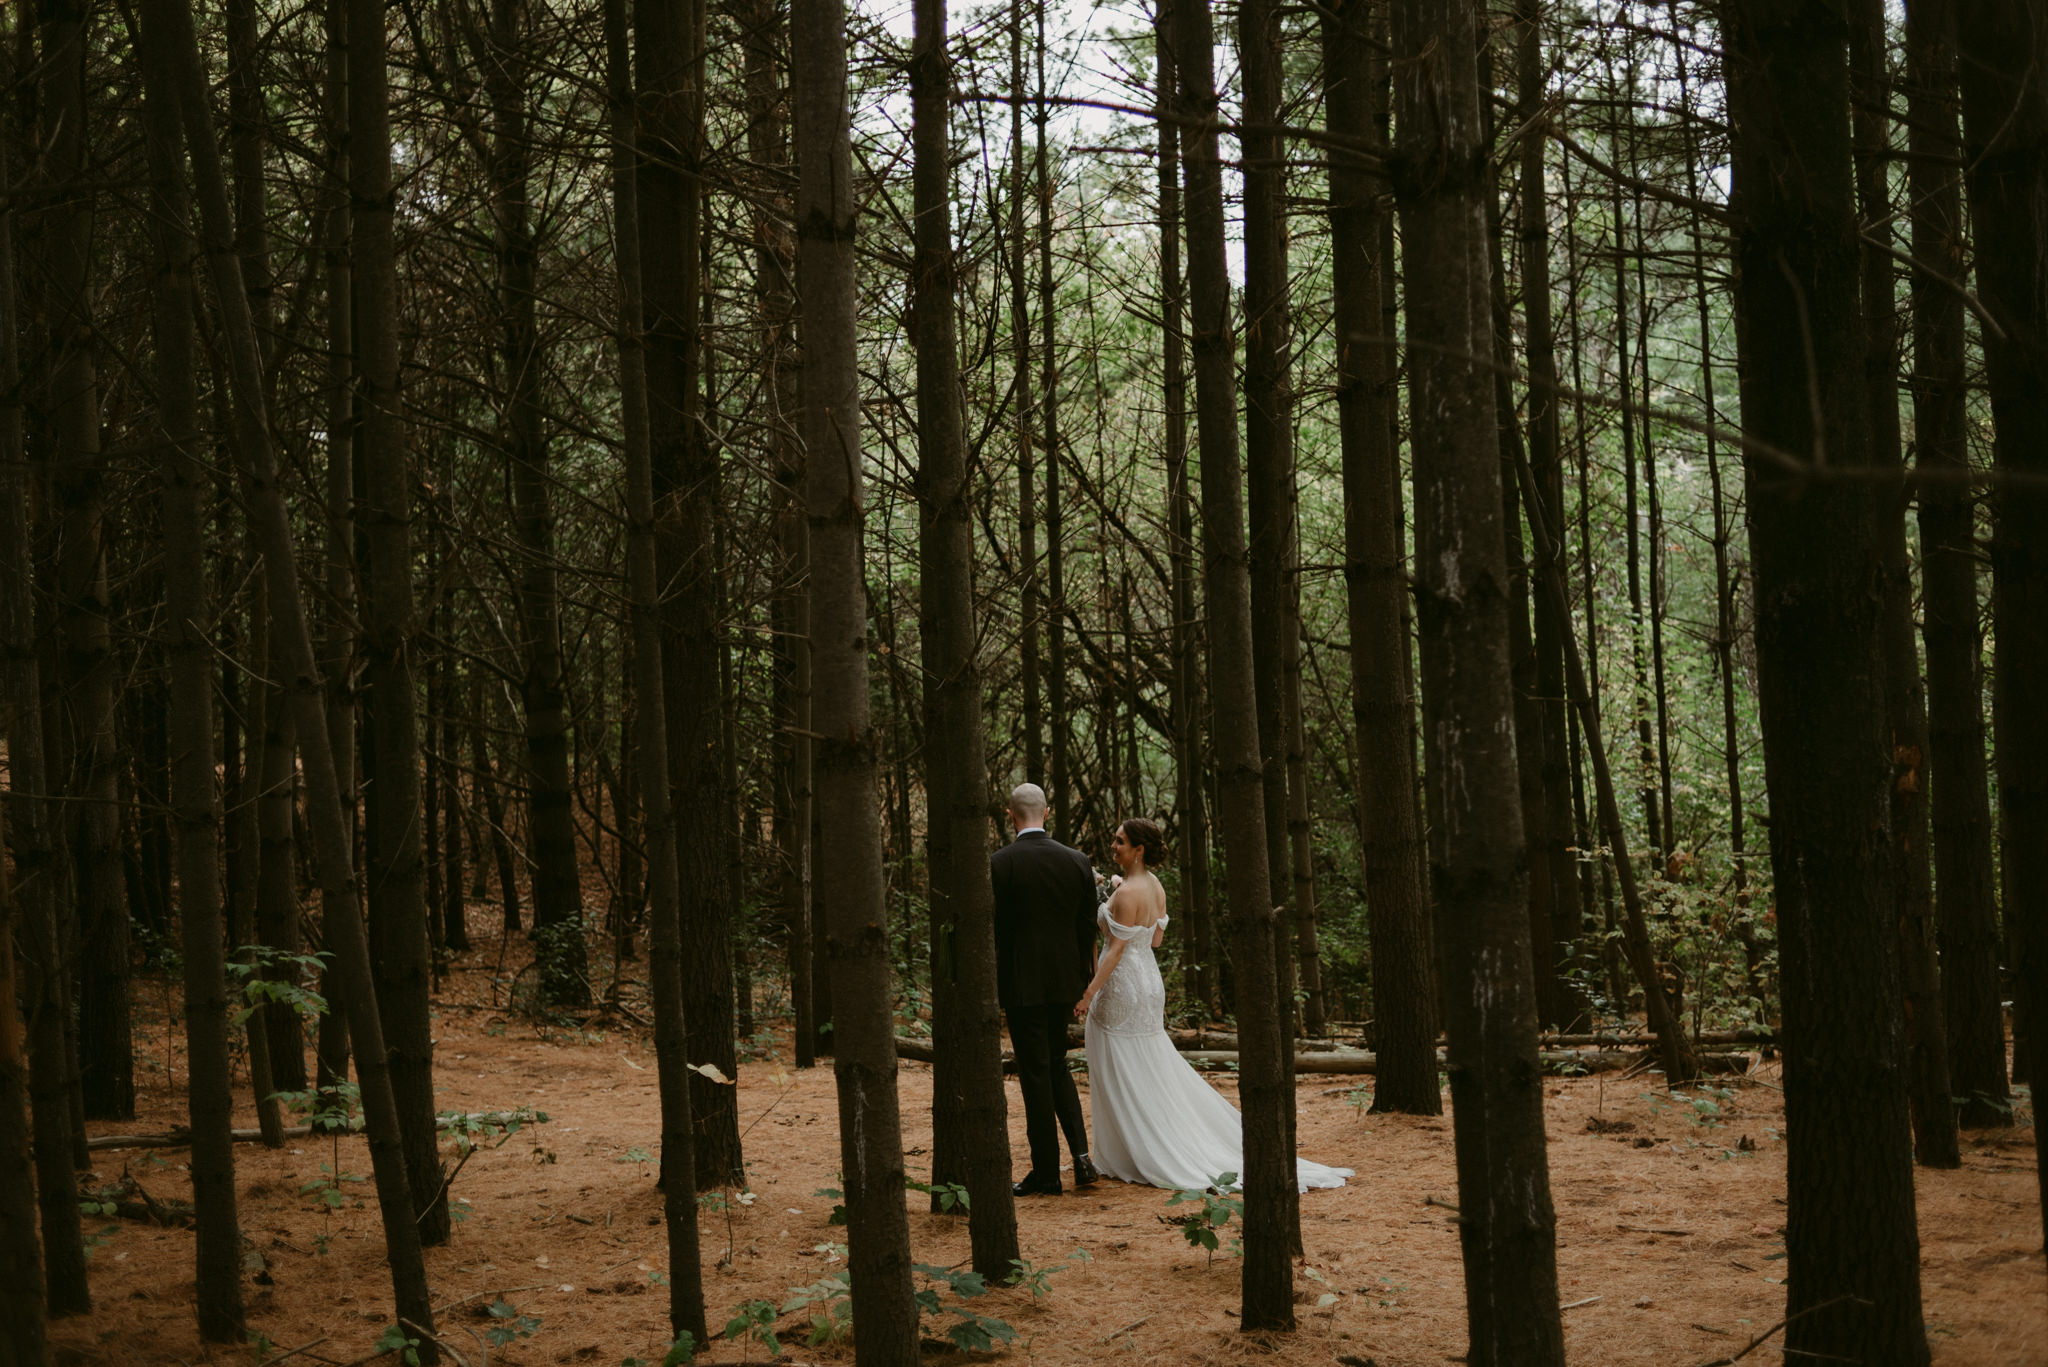 Bride and groom holding hands and walking in forest